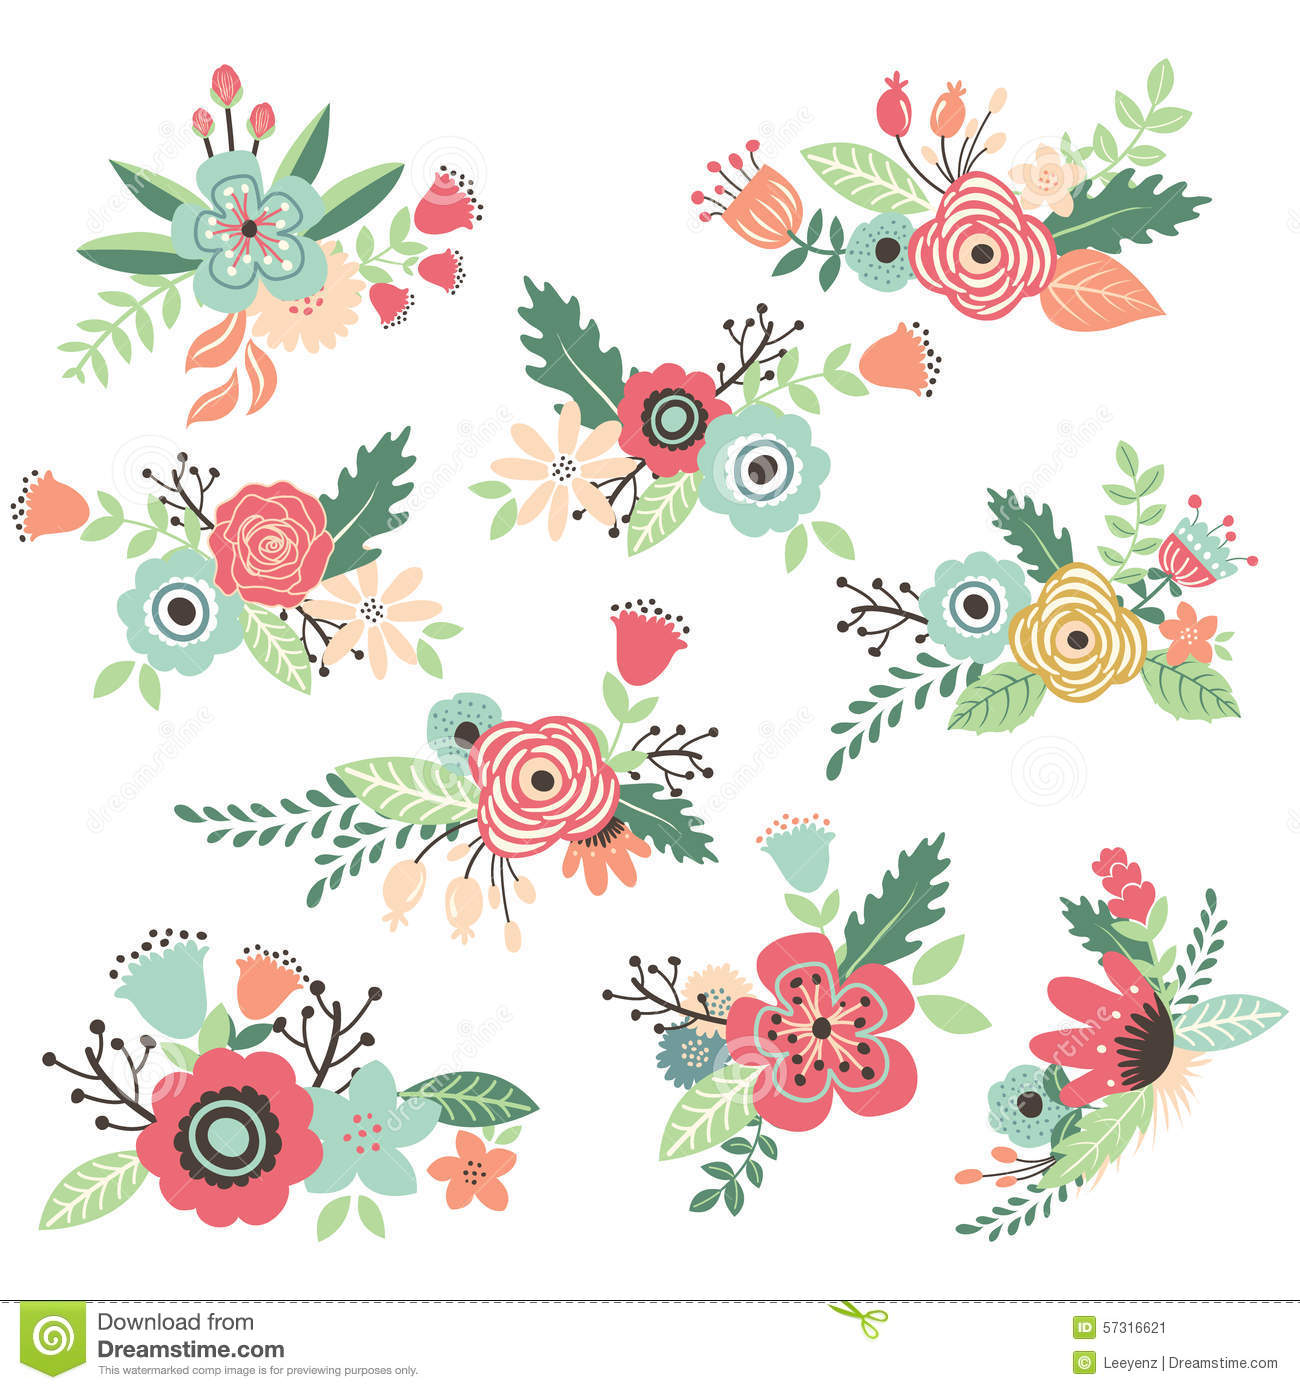 Vintage hand drawn flowers set stock vector illustration of vintage hand drawn flowers set izmirmasajfo